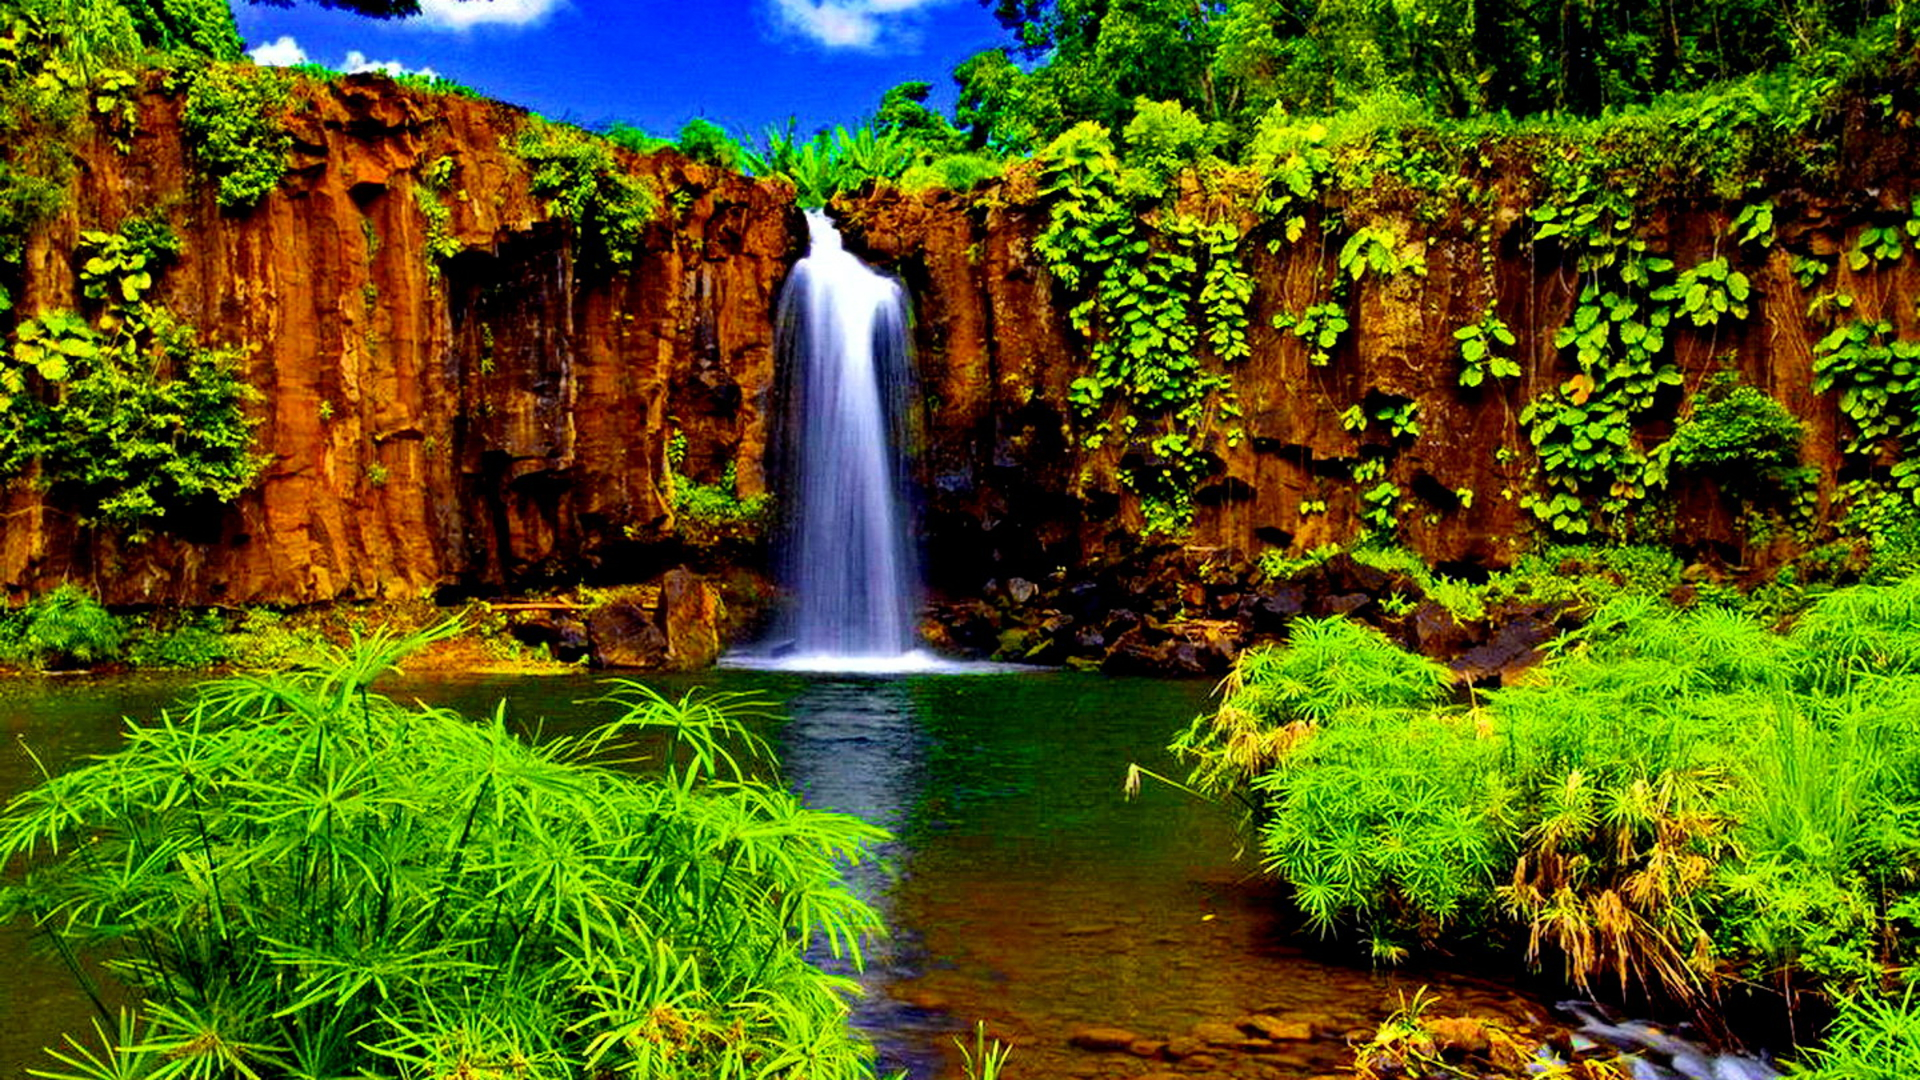 Tropical Waterfall Full HD Wallpaper And Background Image